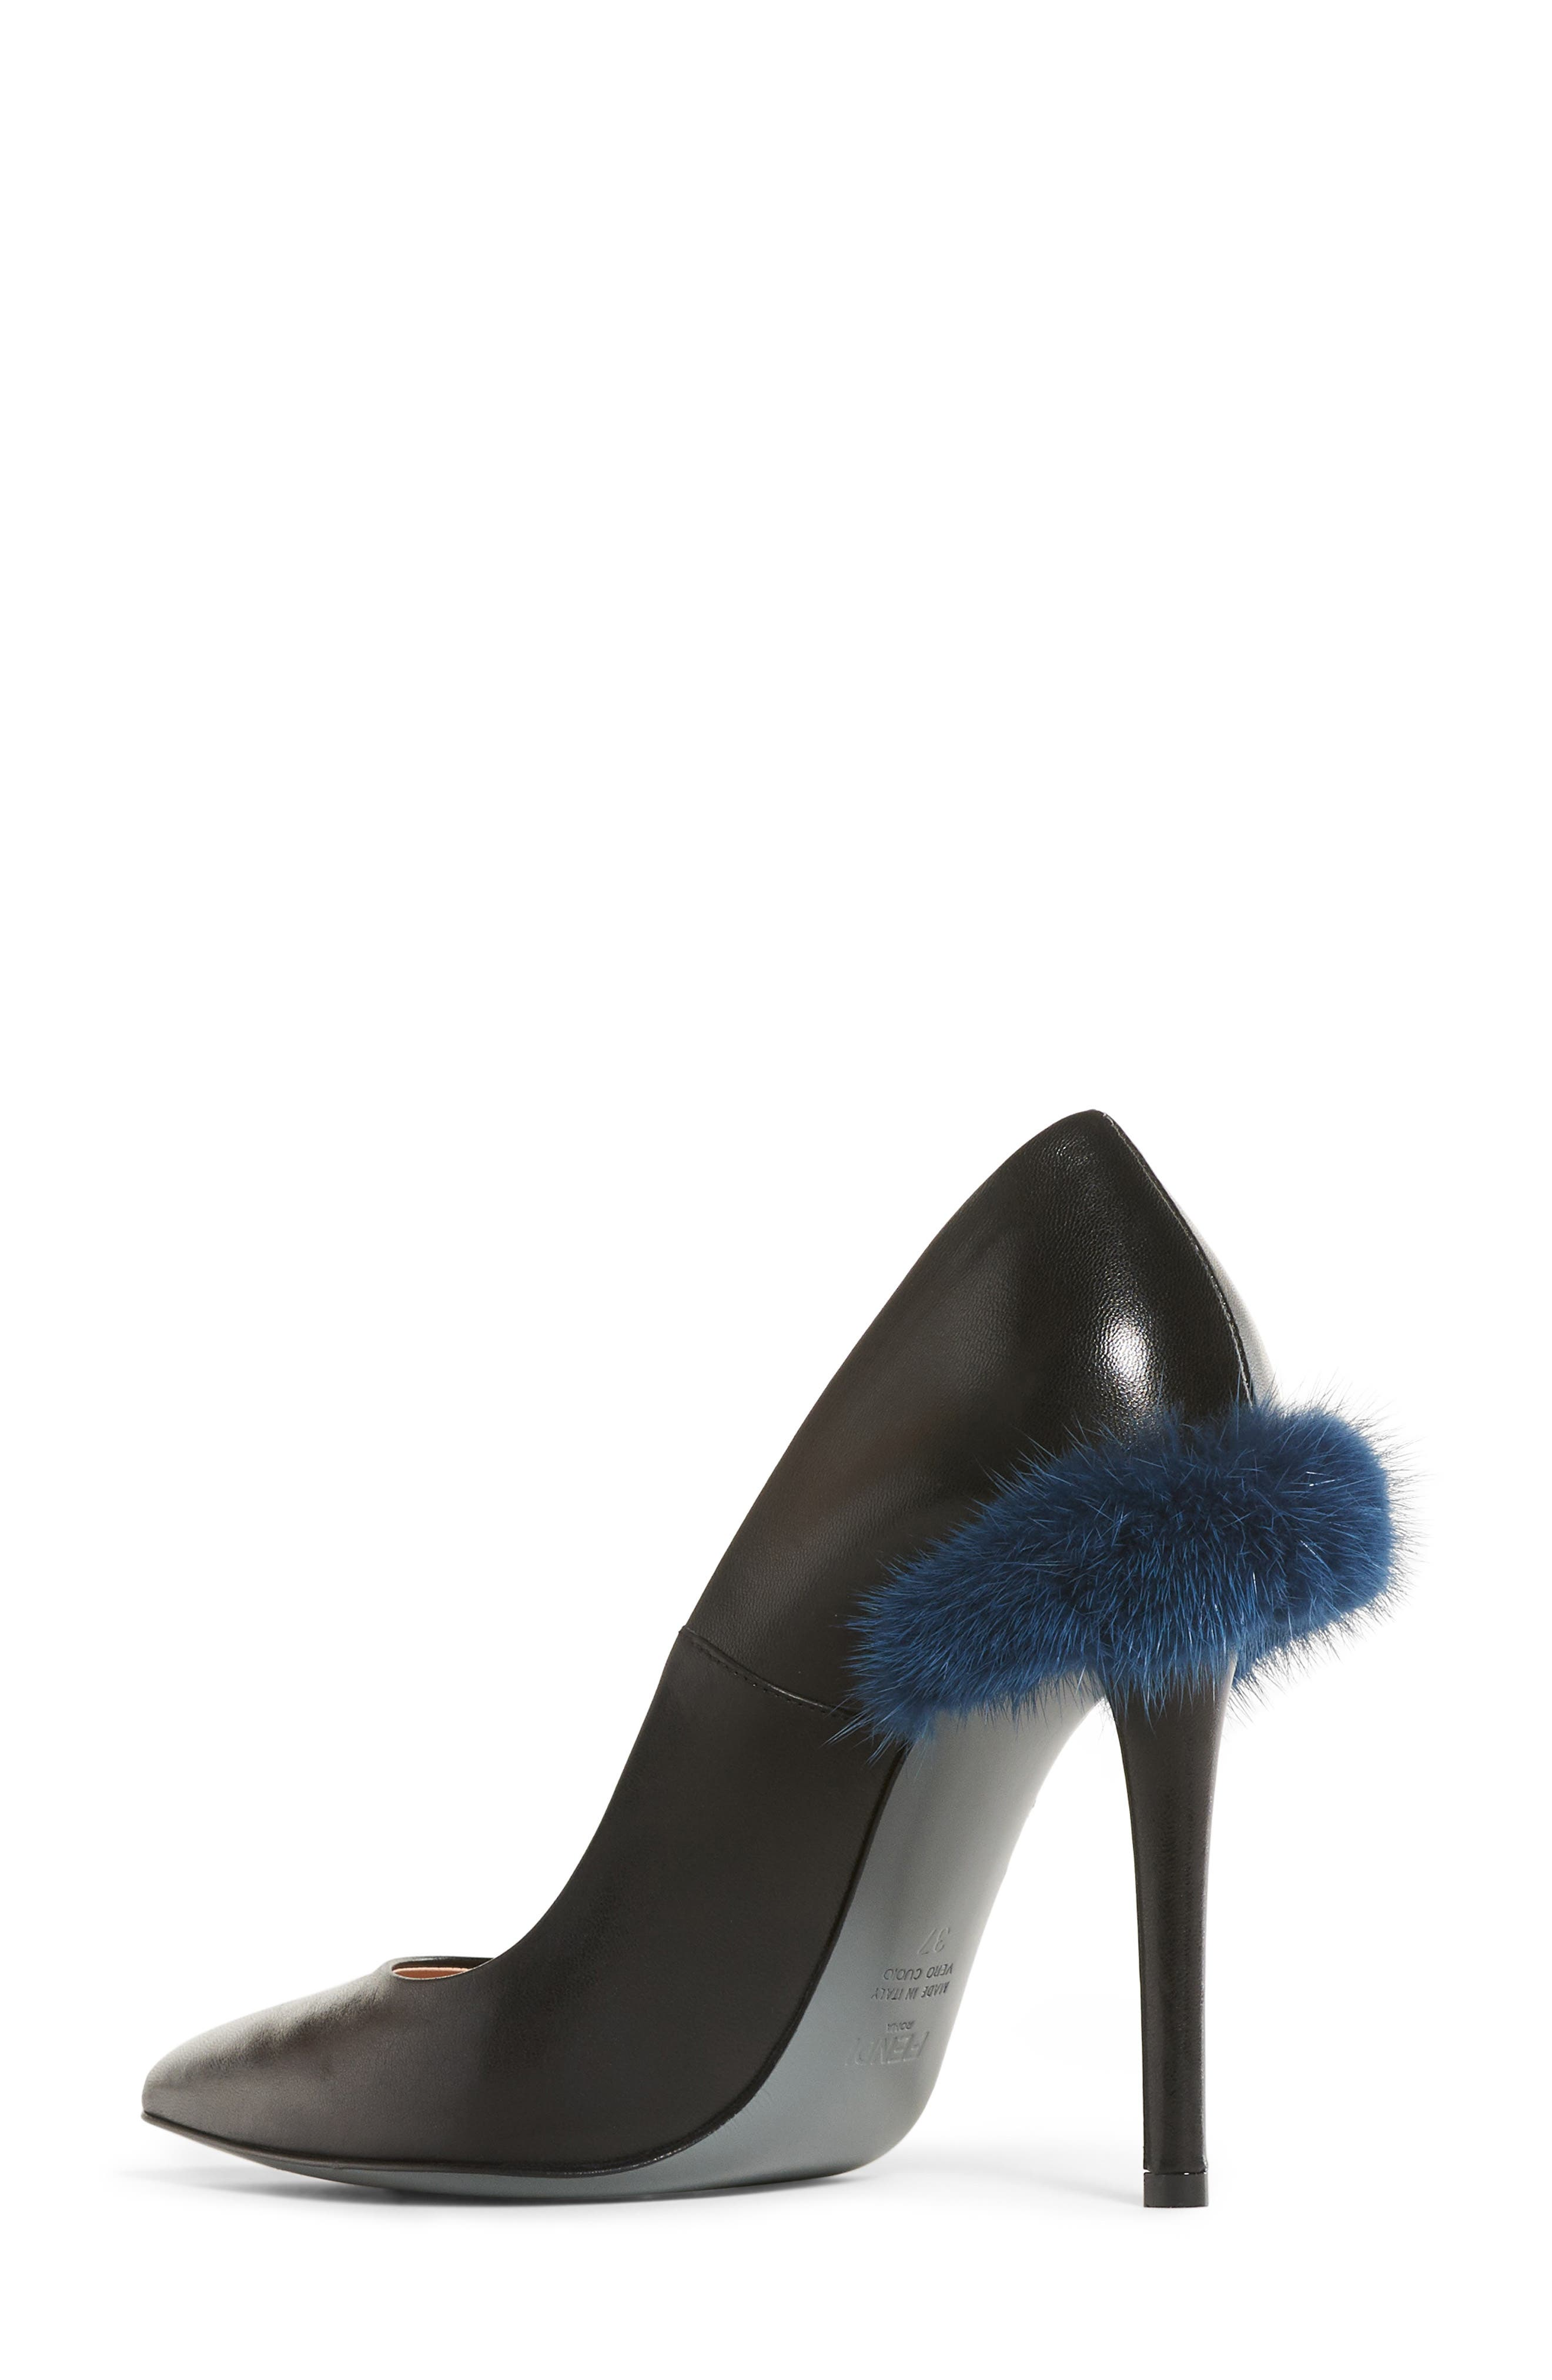 Duo Pointy Toe Pump with Genuine Mink Trim,                             Alternate thumbnail 2, color,                             009